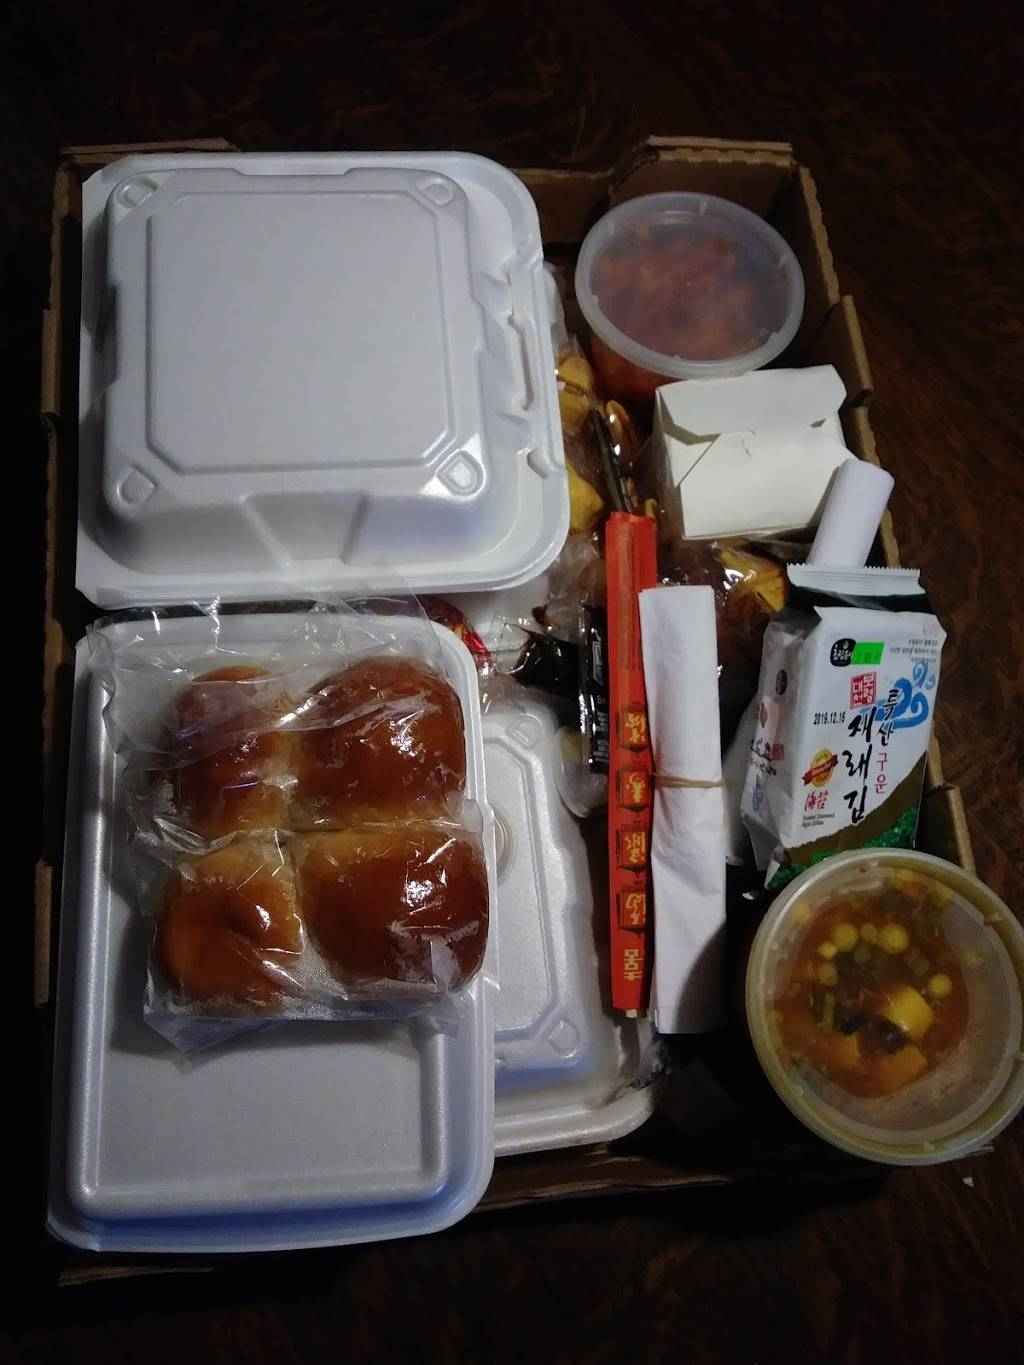 New York Minute Chinese Food | meal delivery | 9770 Dixie Hwy, Village of Clarkston, MI 48348, USA | 2489225710 OR +1 248-922-5710